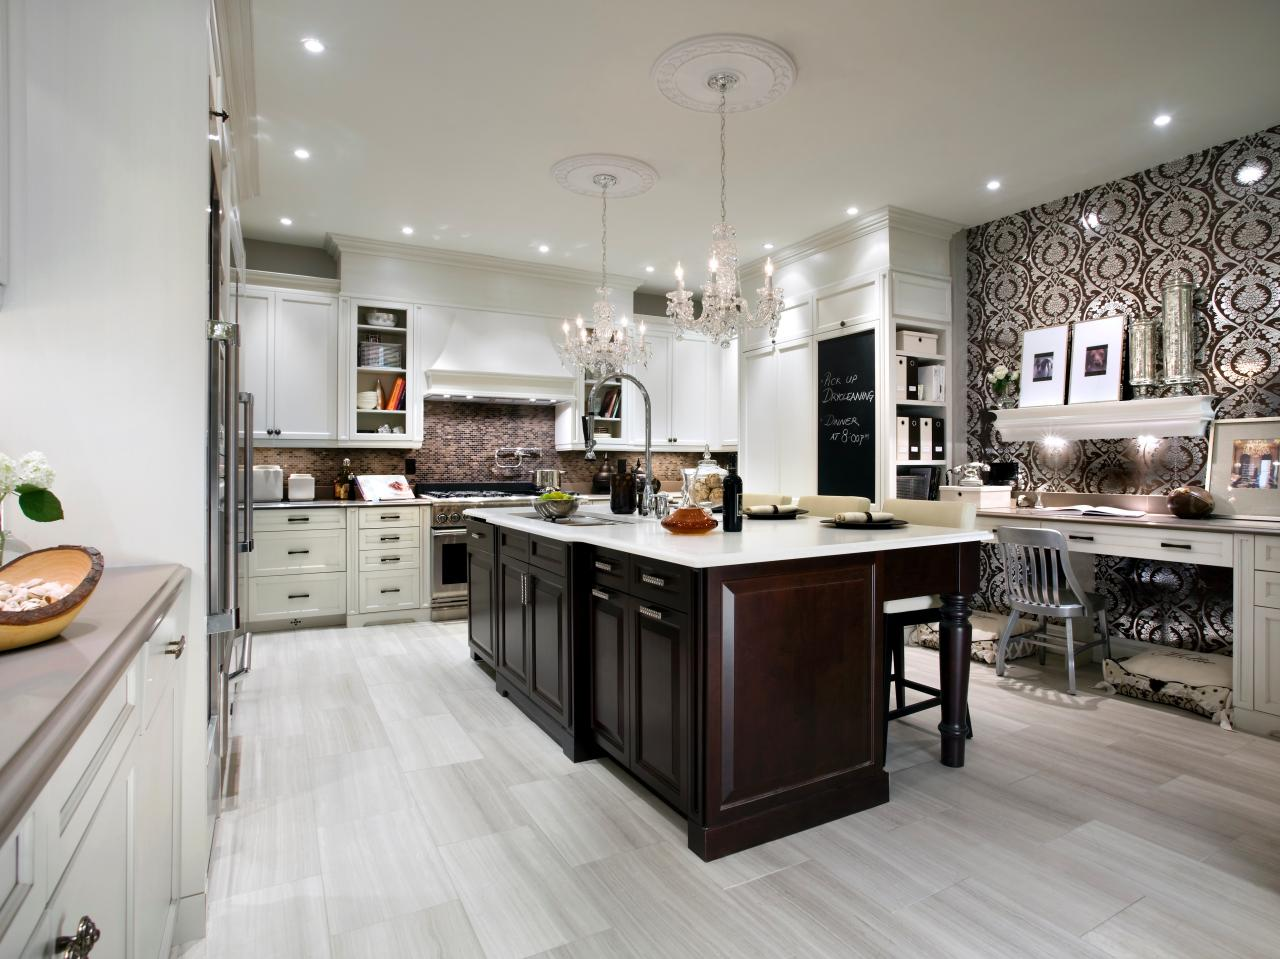 Http Www Hgtv Com Design Rooms Kitchens Inviting Kitchen Designs By Candice Olson Pictures